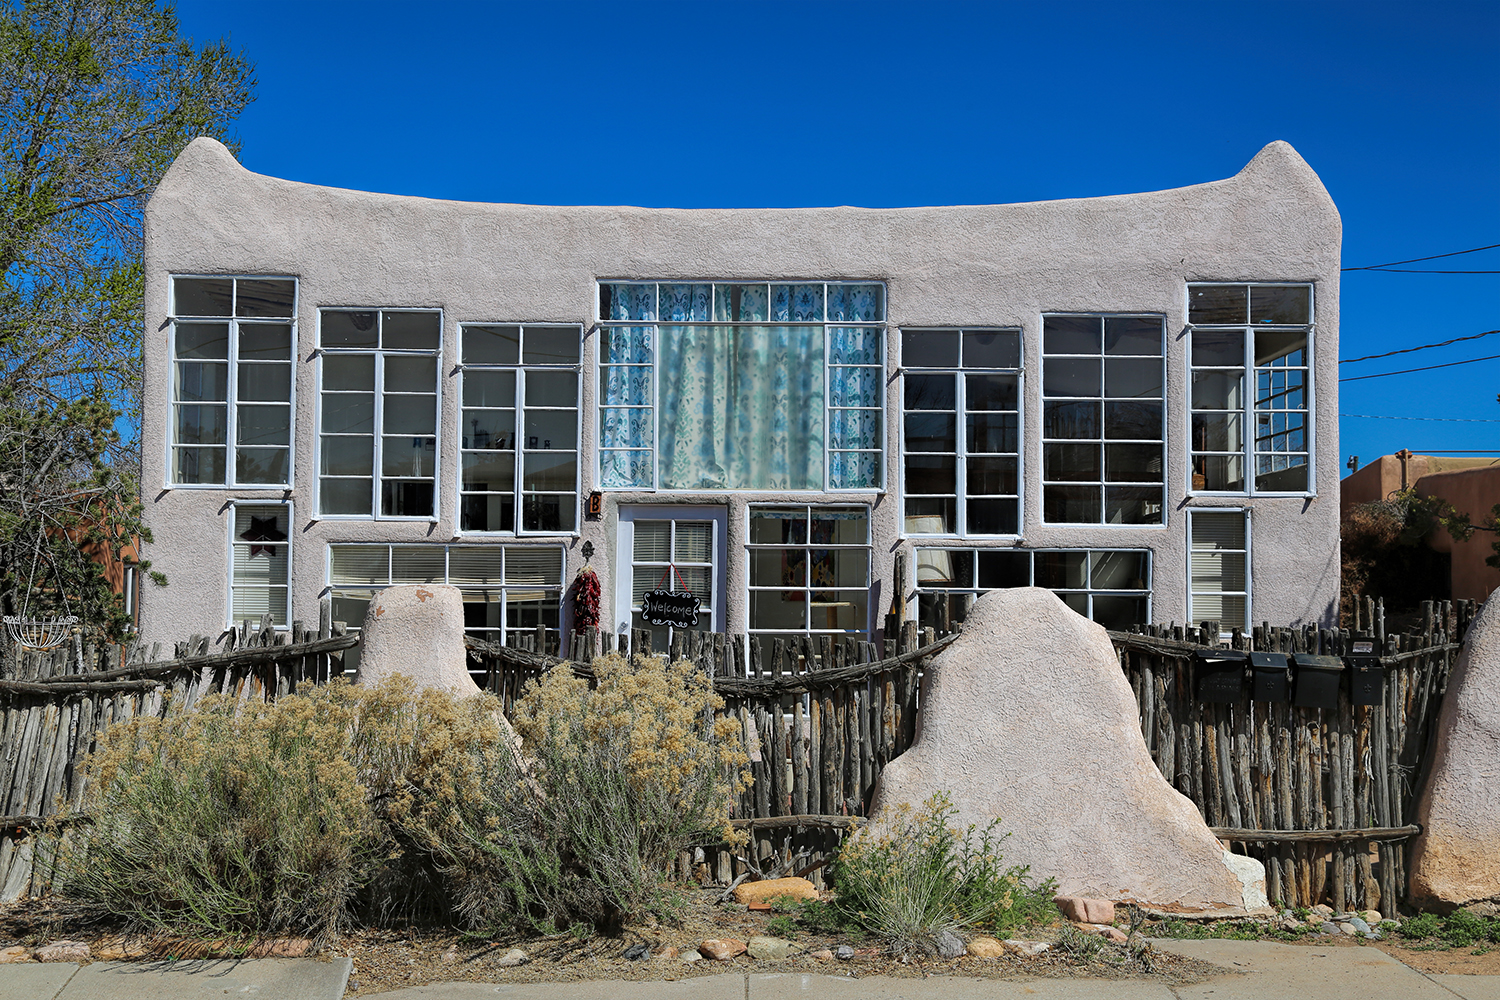 Eclectic architecture in Santa Fe's Railyard District